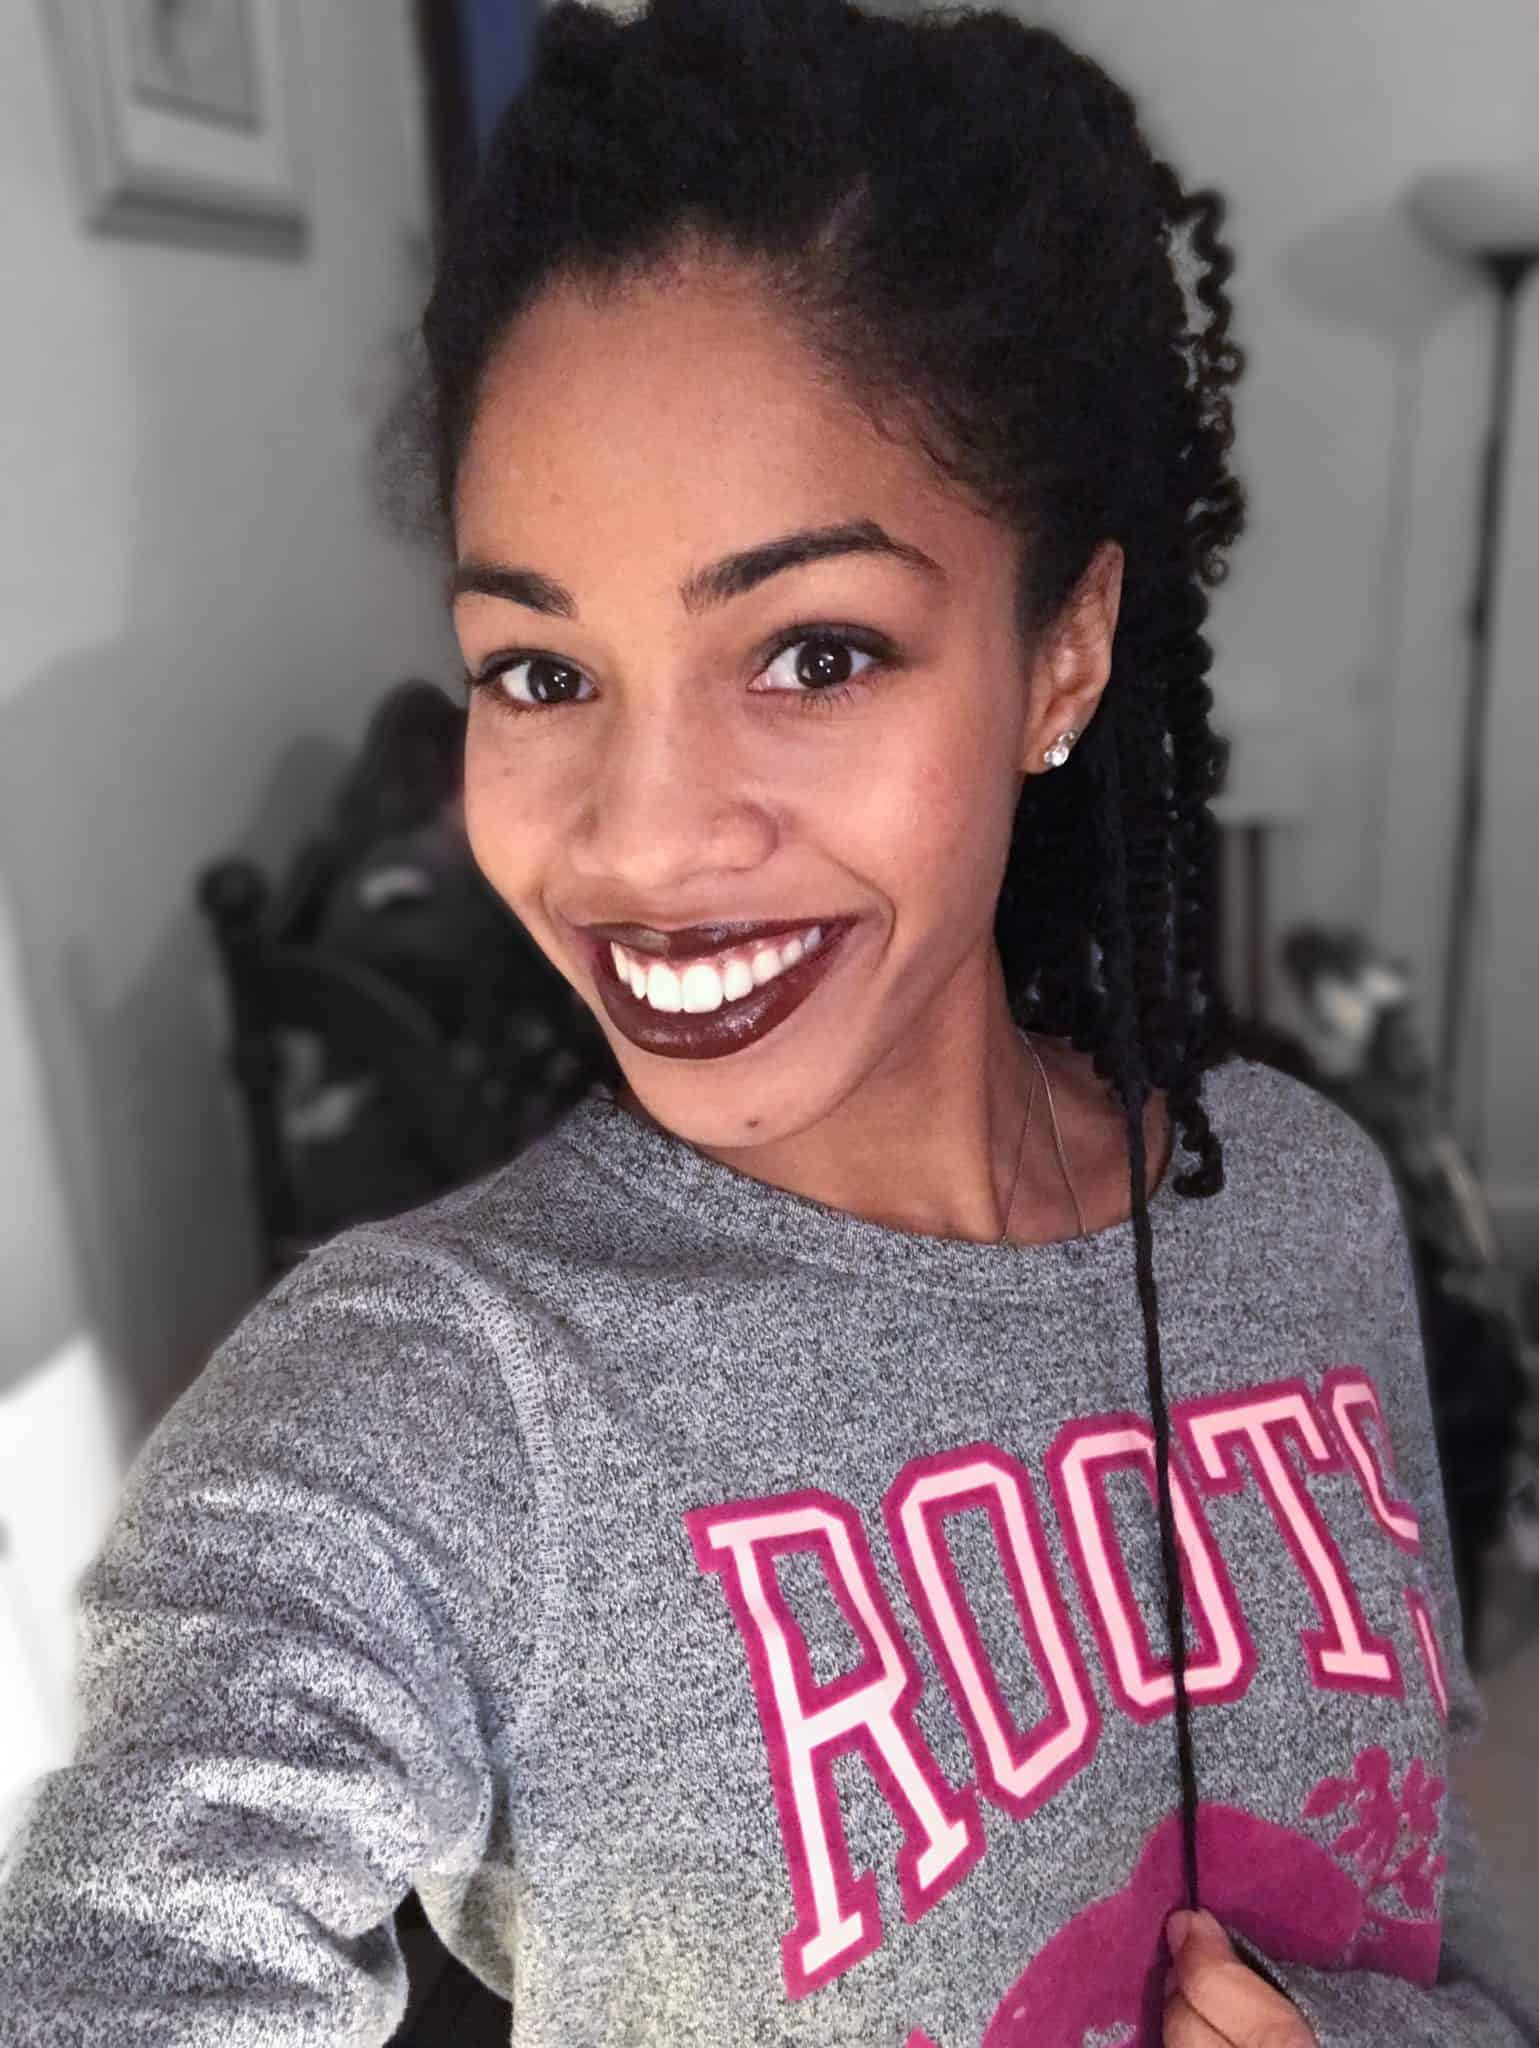 Natural Hair Dyed Black Hair Length Check | Healthy Natural Hair Journey with Colored Type 4 Curls